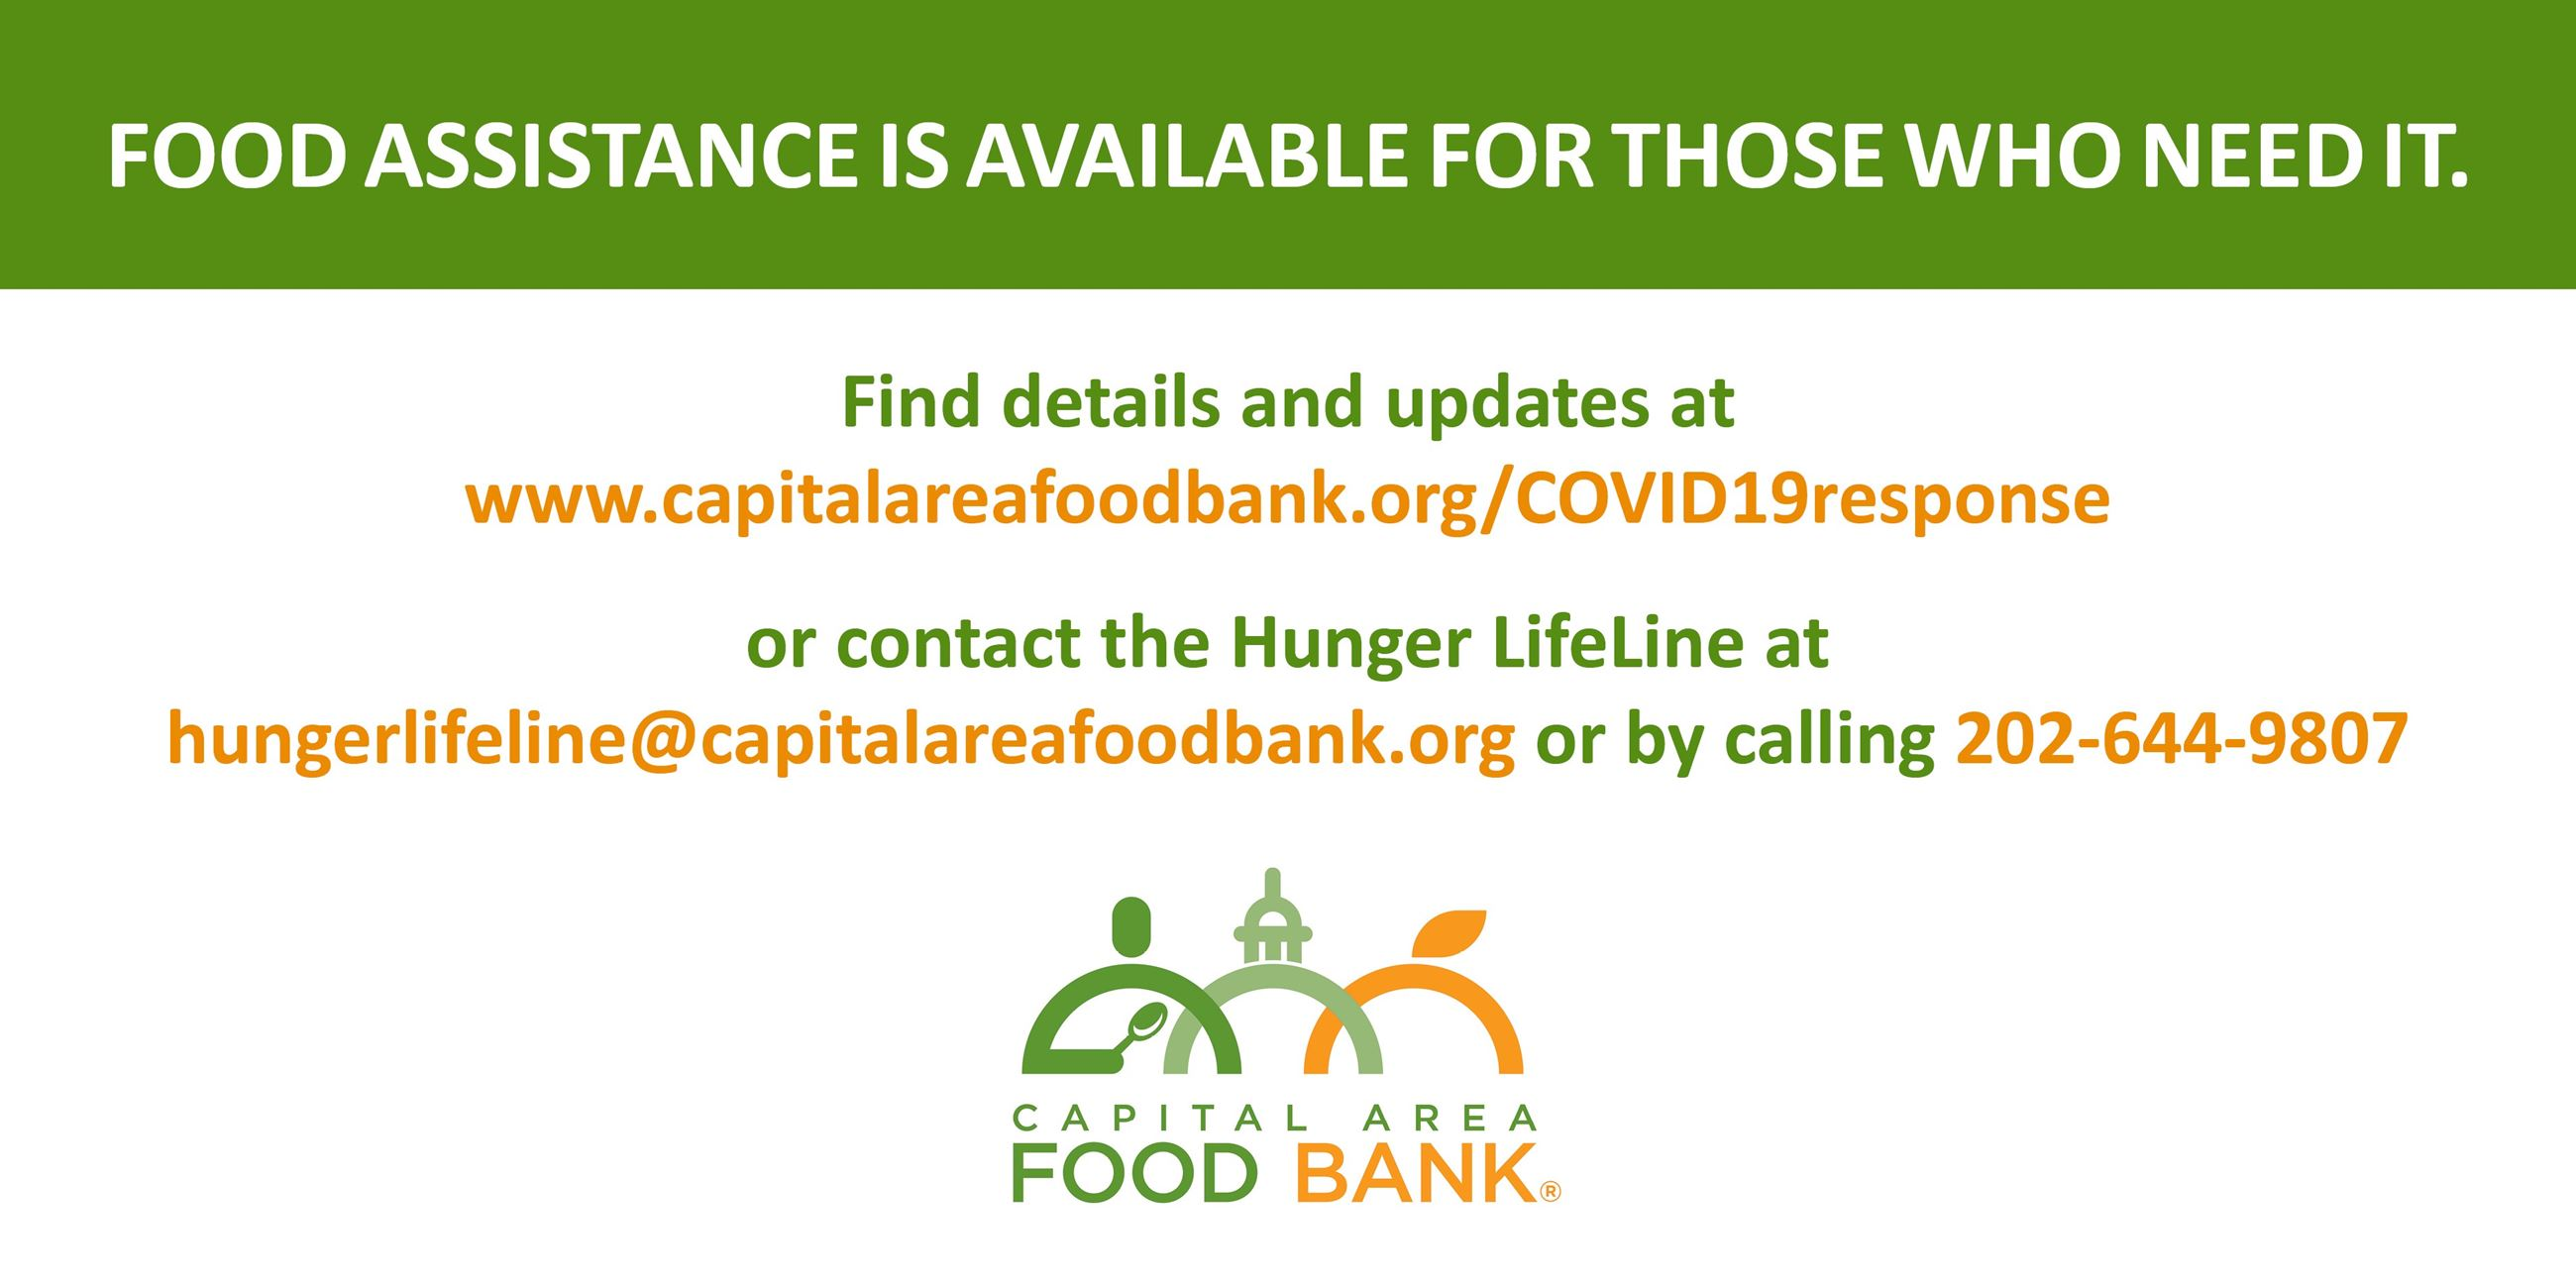 CapitalFoodBank-Food-Assistance